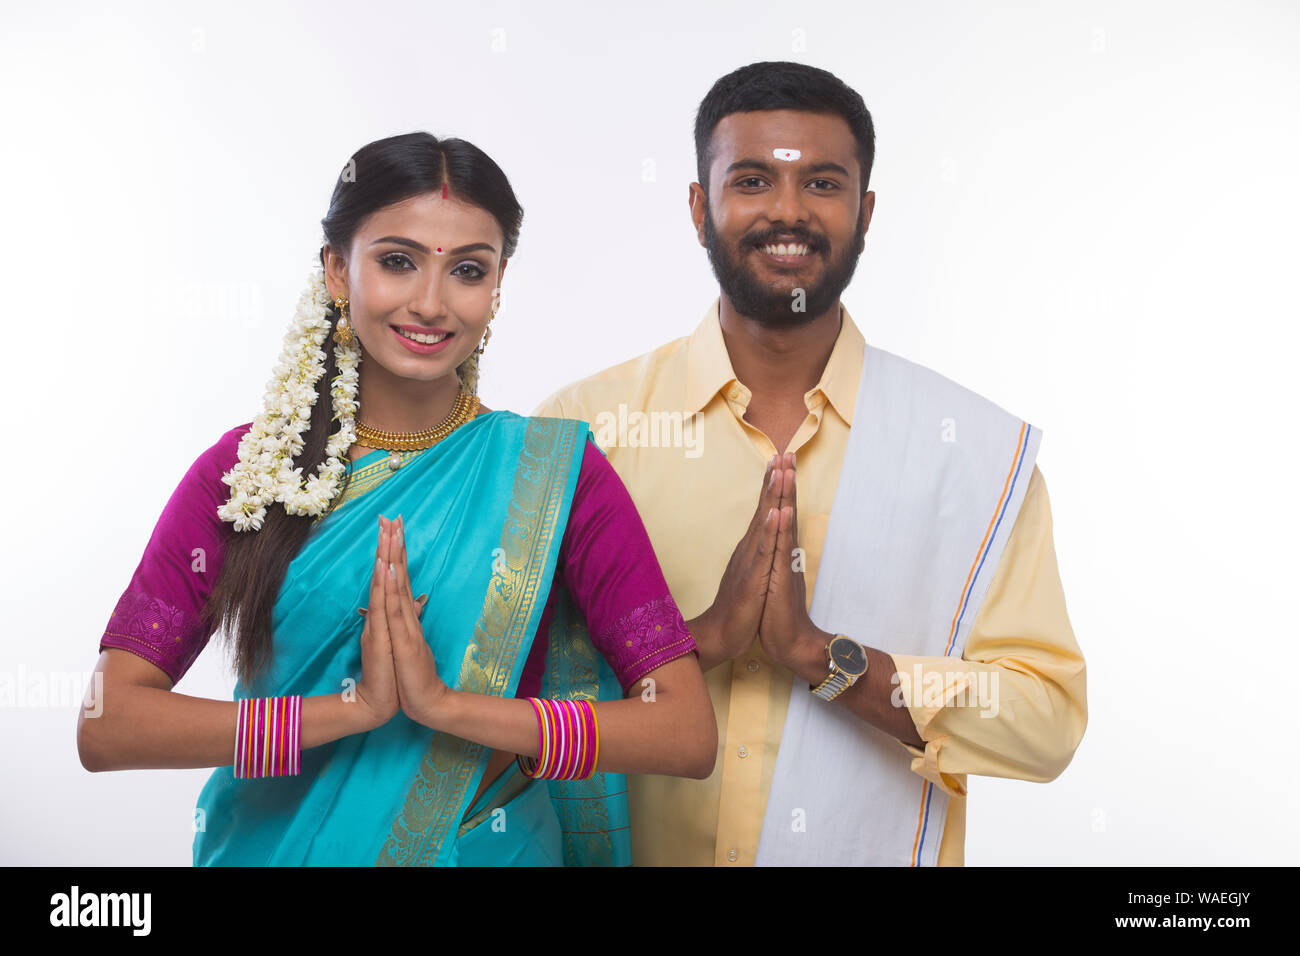 Tamil Couple High Resolution Stock Photography And Images Alamy